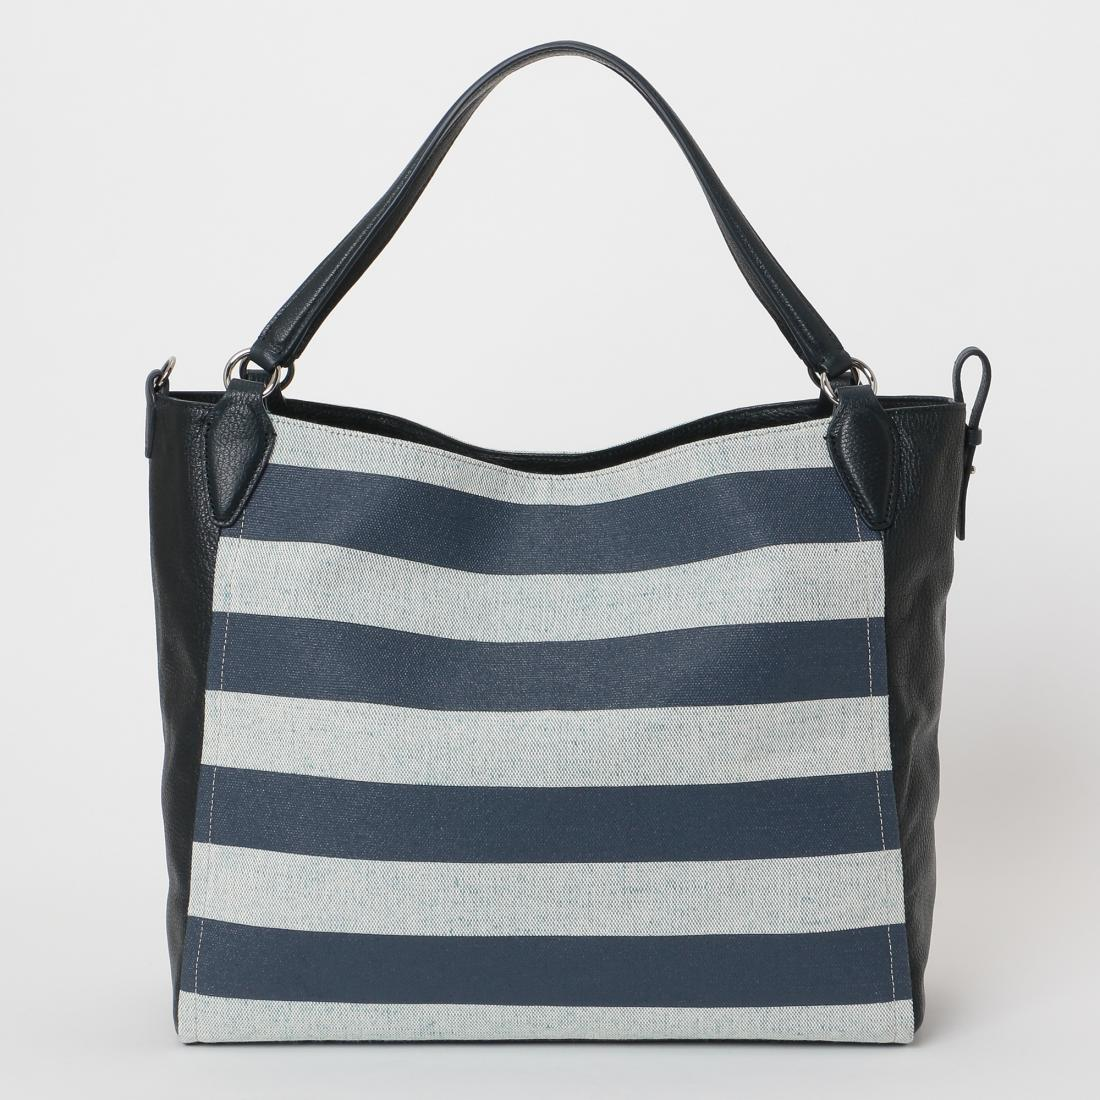 Galleriant x Barneys New York Tote Bag 1220234: Navy